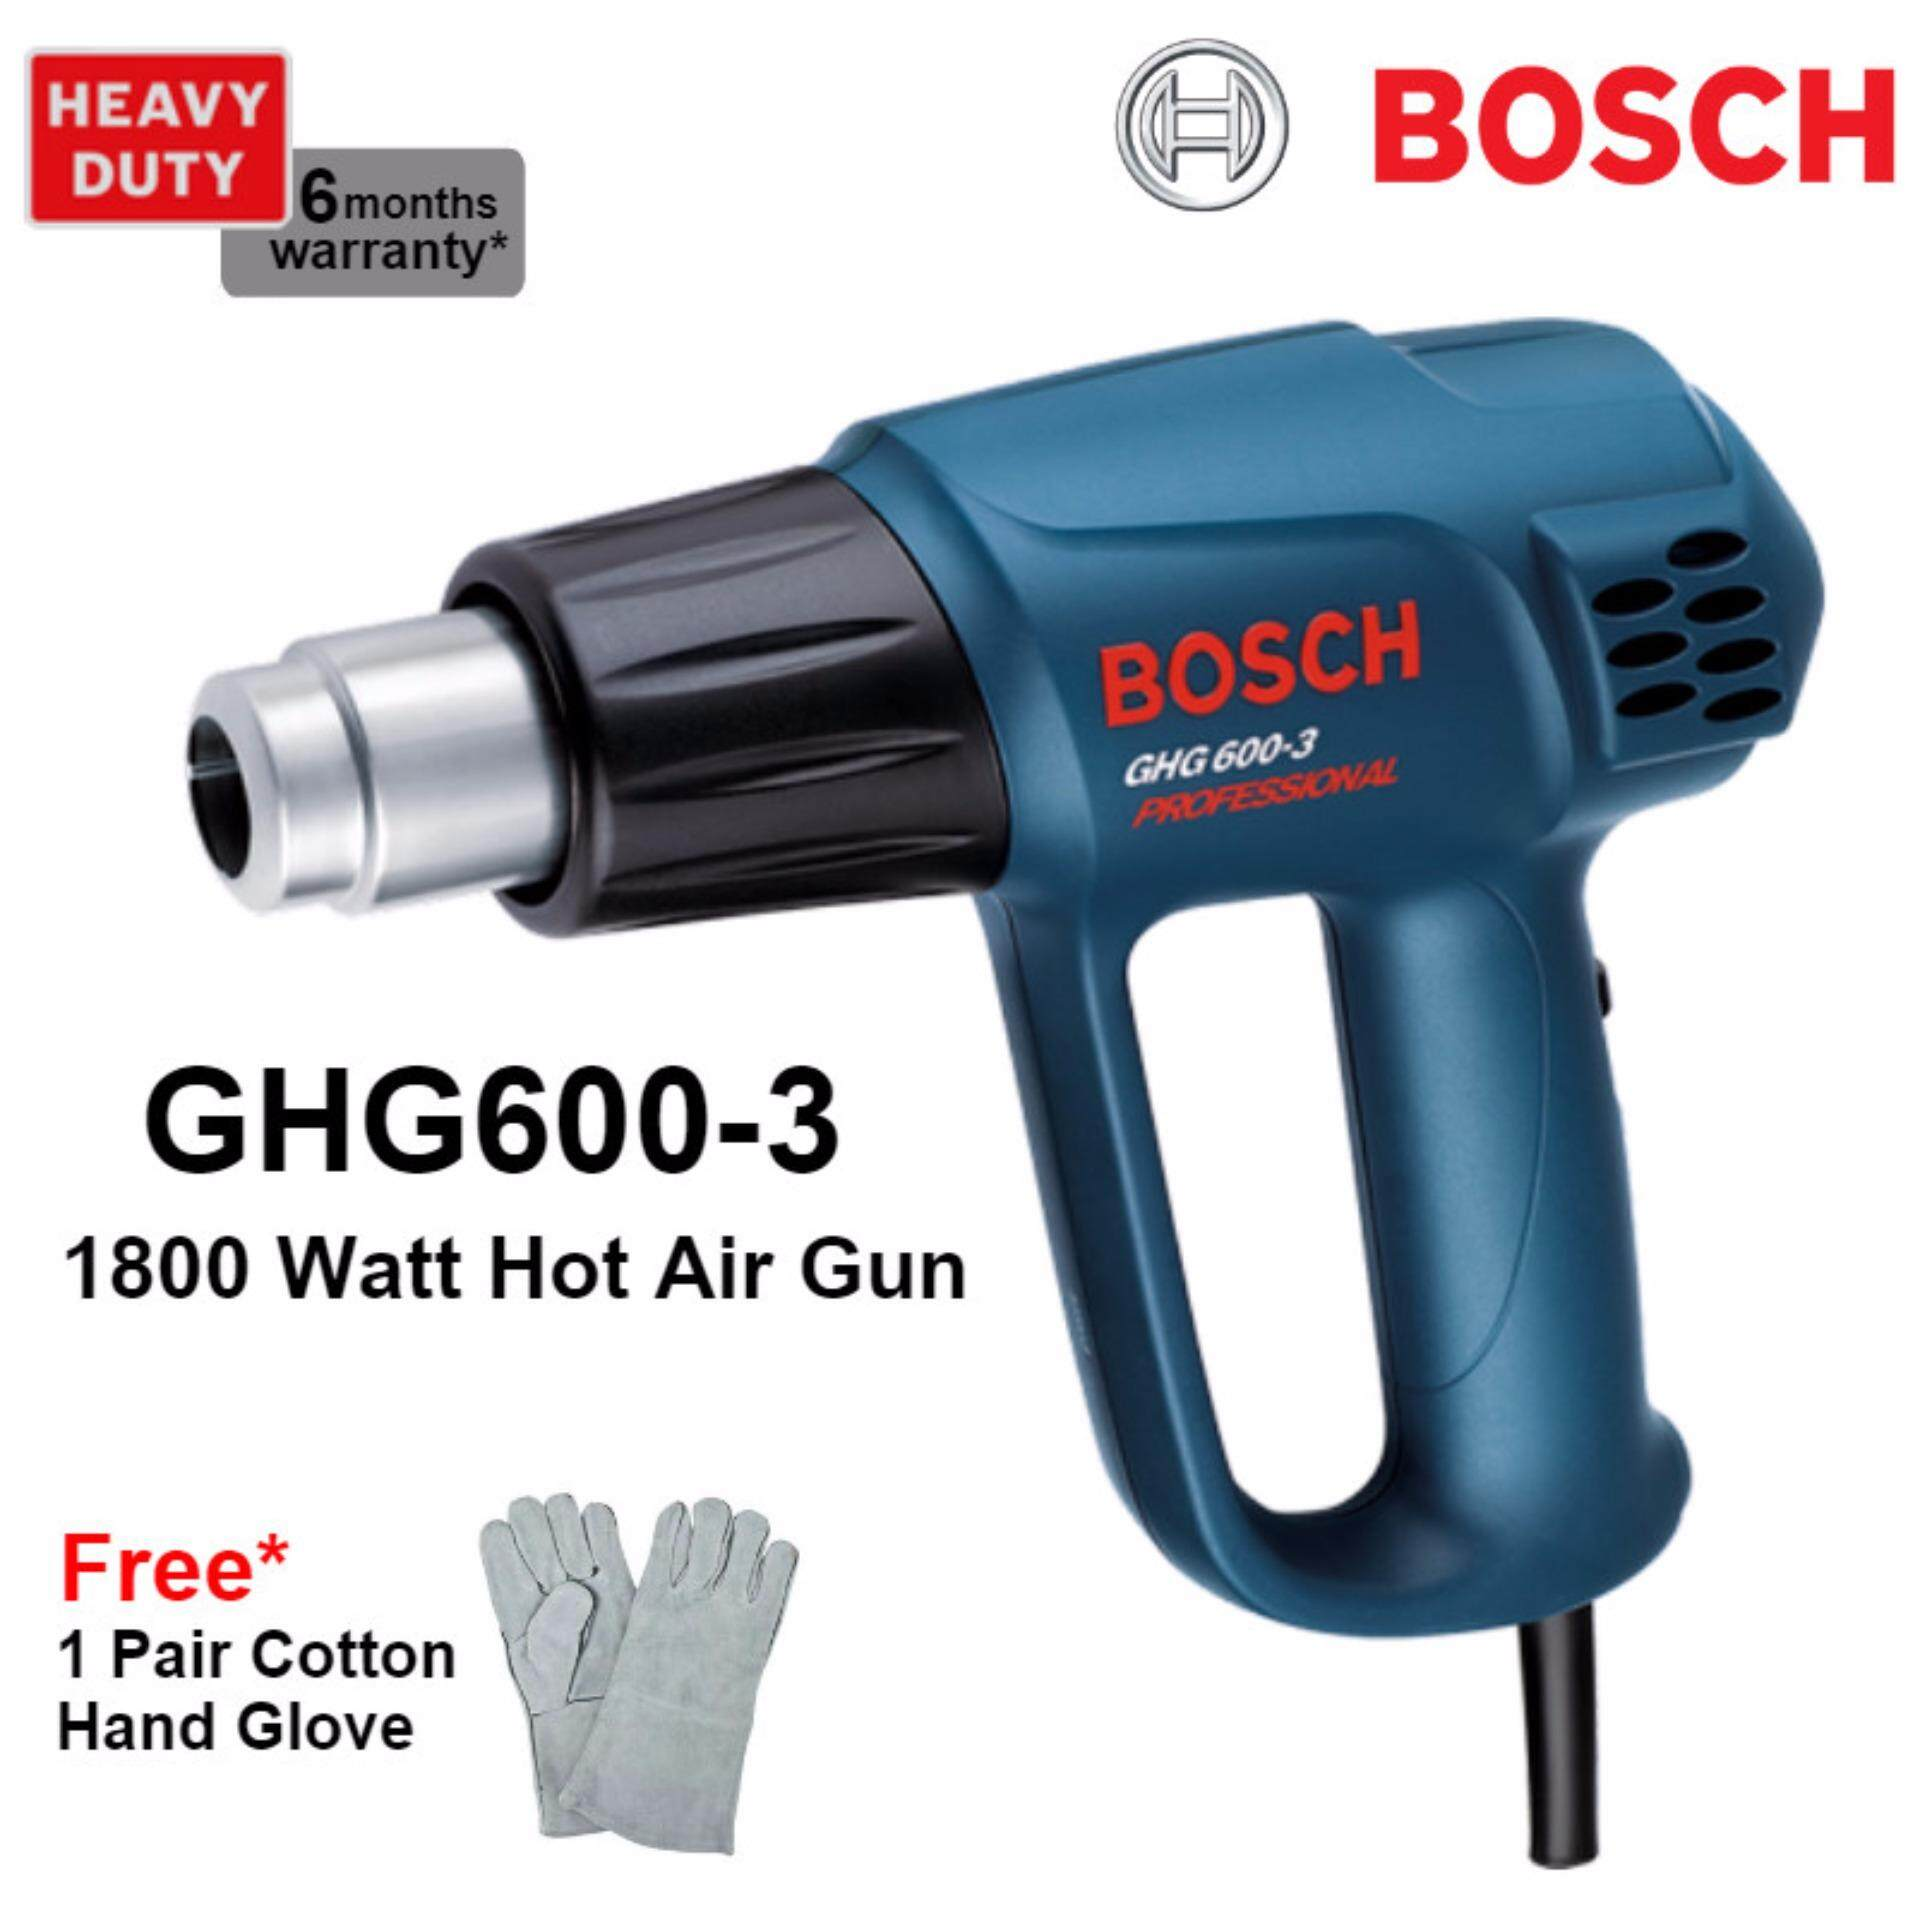 Comparison Of 6 Bosches Reviews Ratings And Best Price In Kl Bosch Hot Air Gun New Ghg600 3 Professional6 Months Warranty